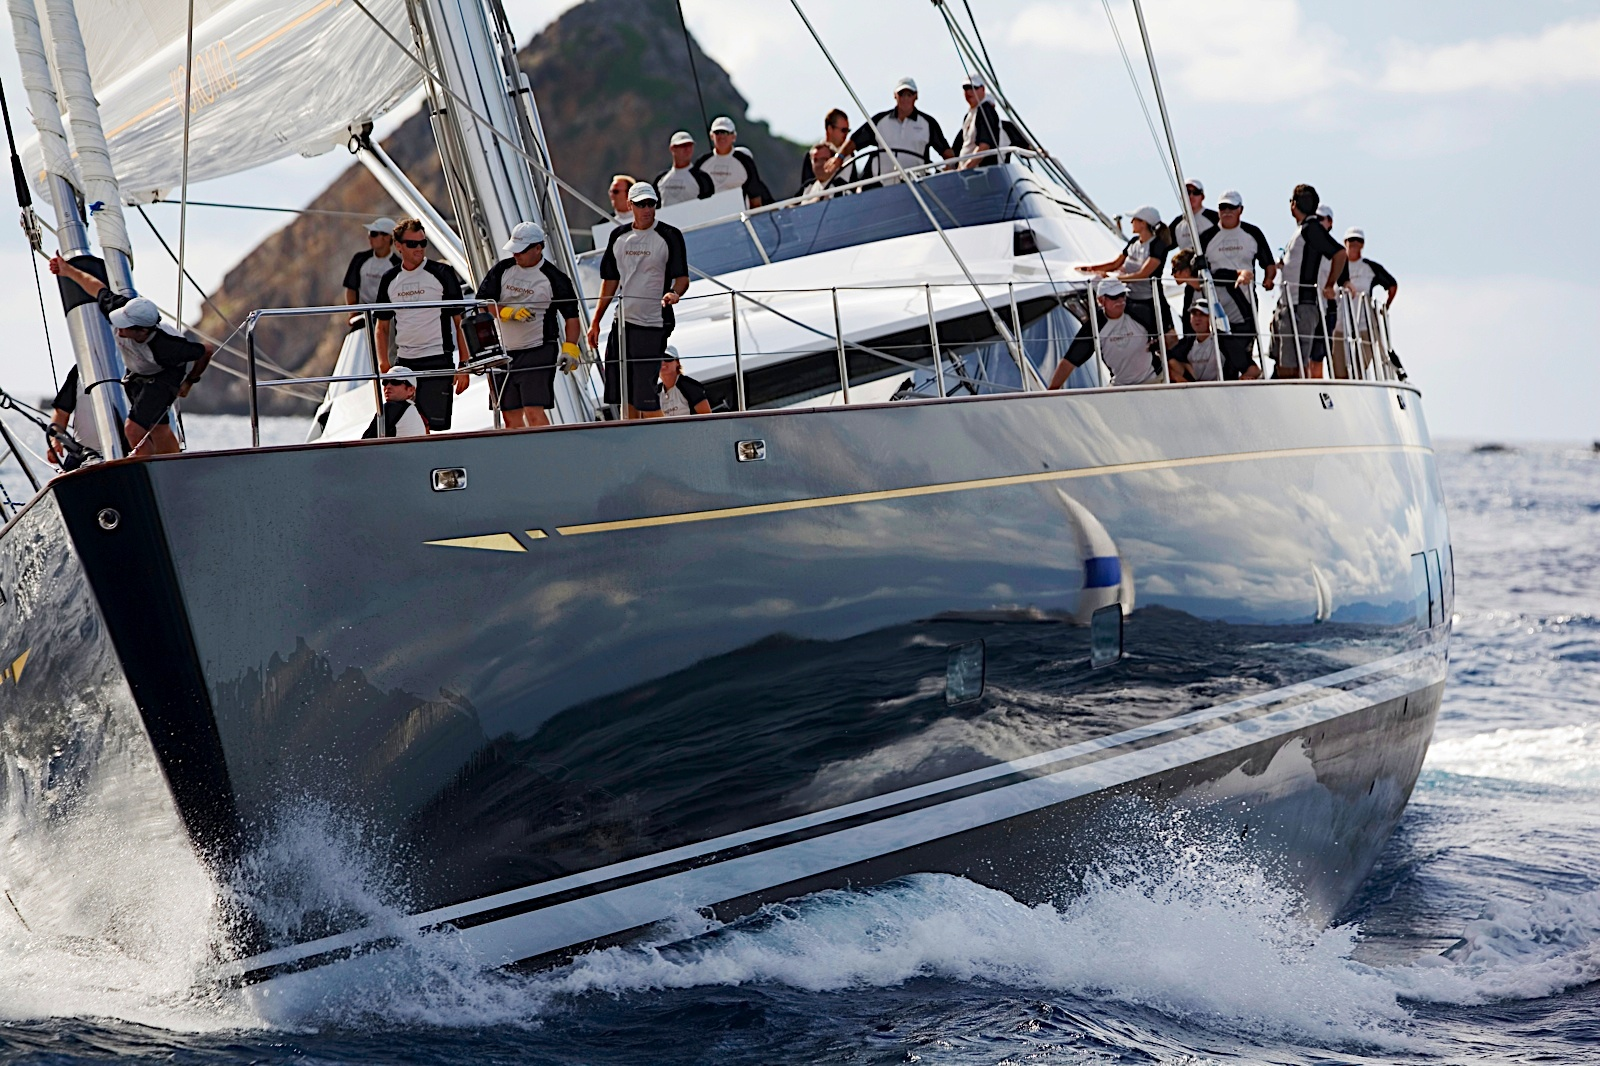 Sailing Yacht kokomo at the St Barts Bucket Regatta